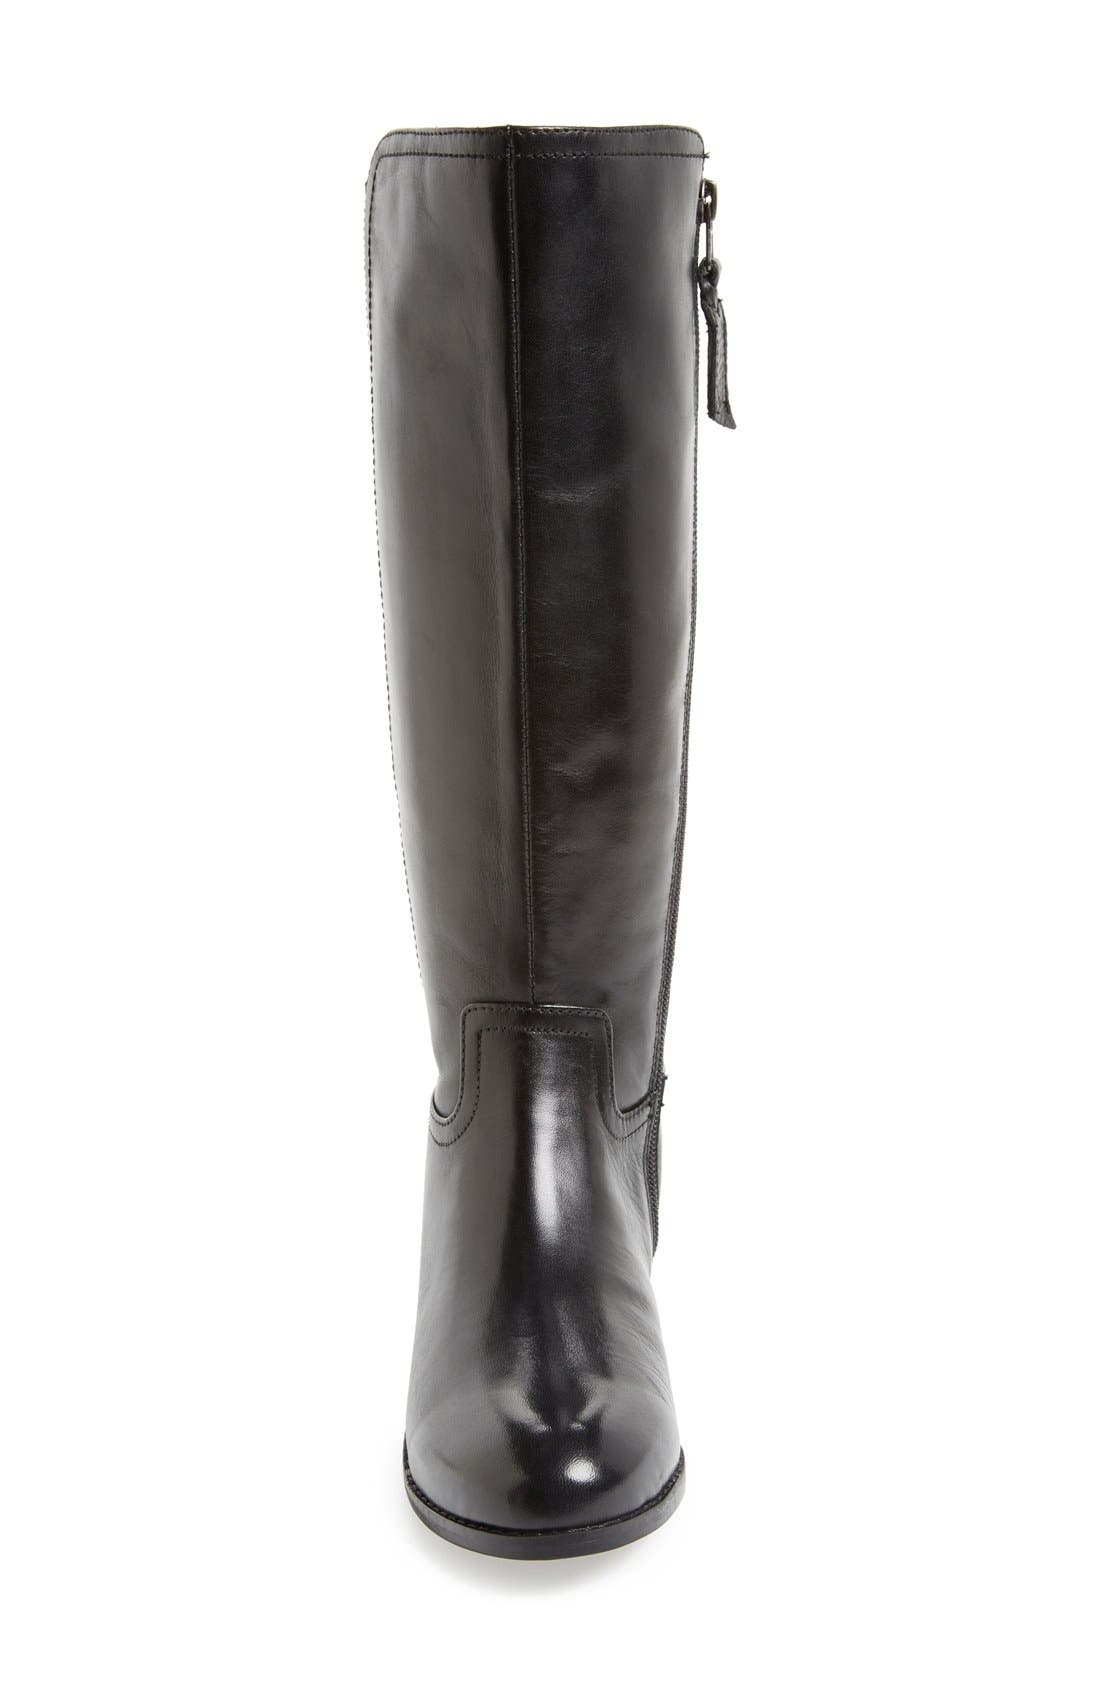 Alternate Image 3  - Trotters 'Signature Lucia' Leather Riding Boot (Wide Calf) (Women)